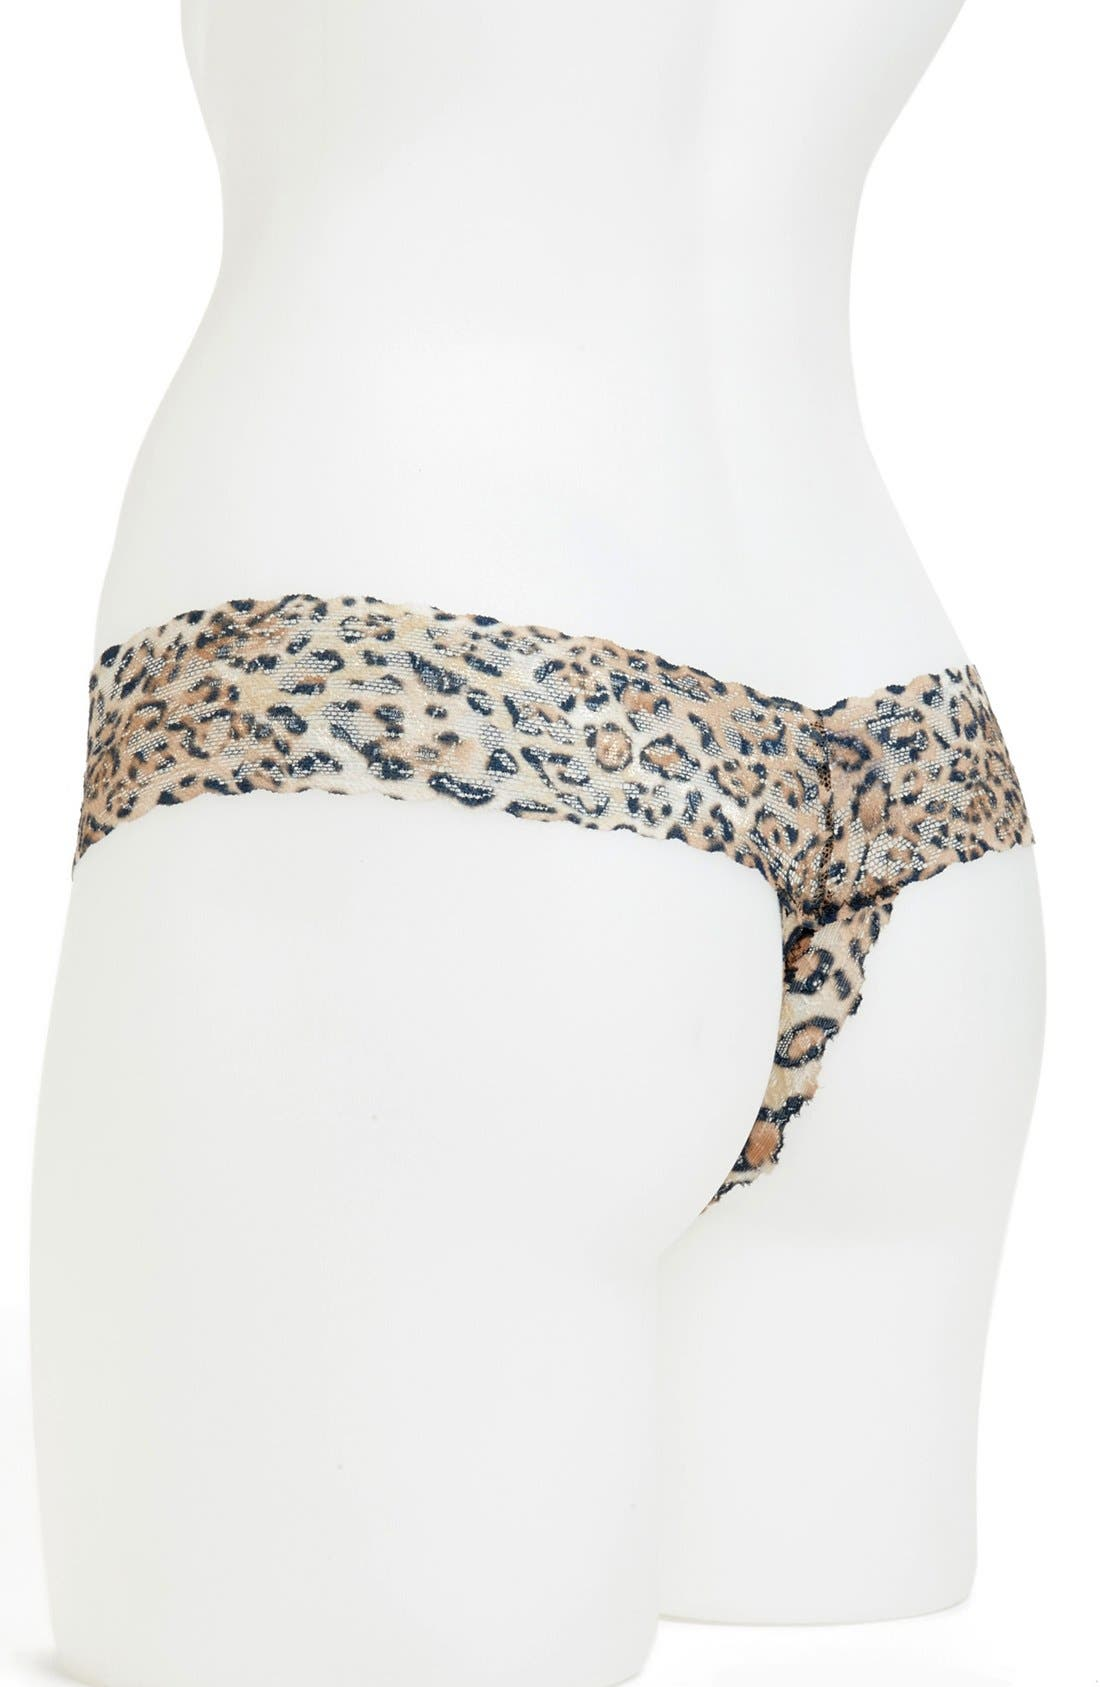 Alternate Image 2  - Hanky Panky 'After Midnight' Open Gusset Lace Thong